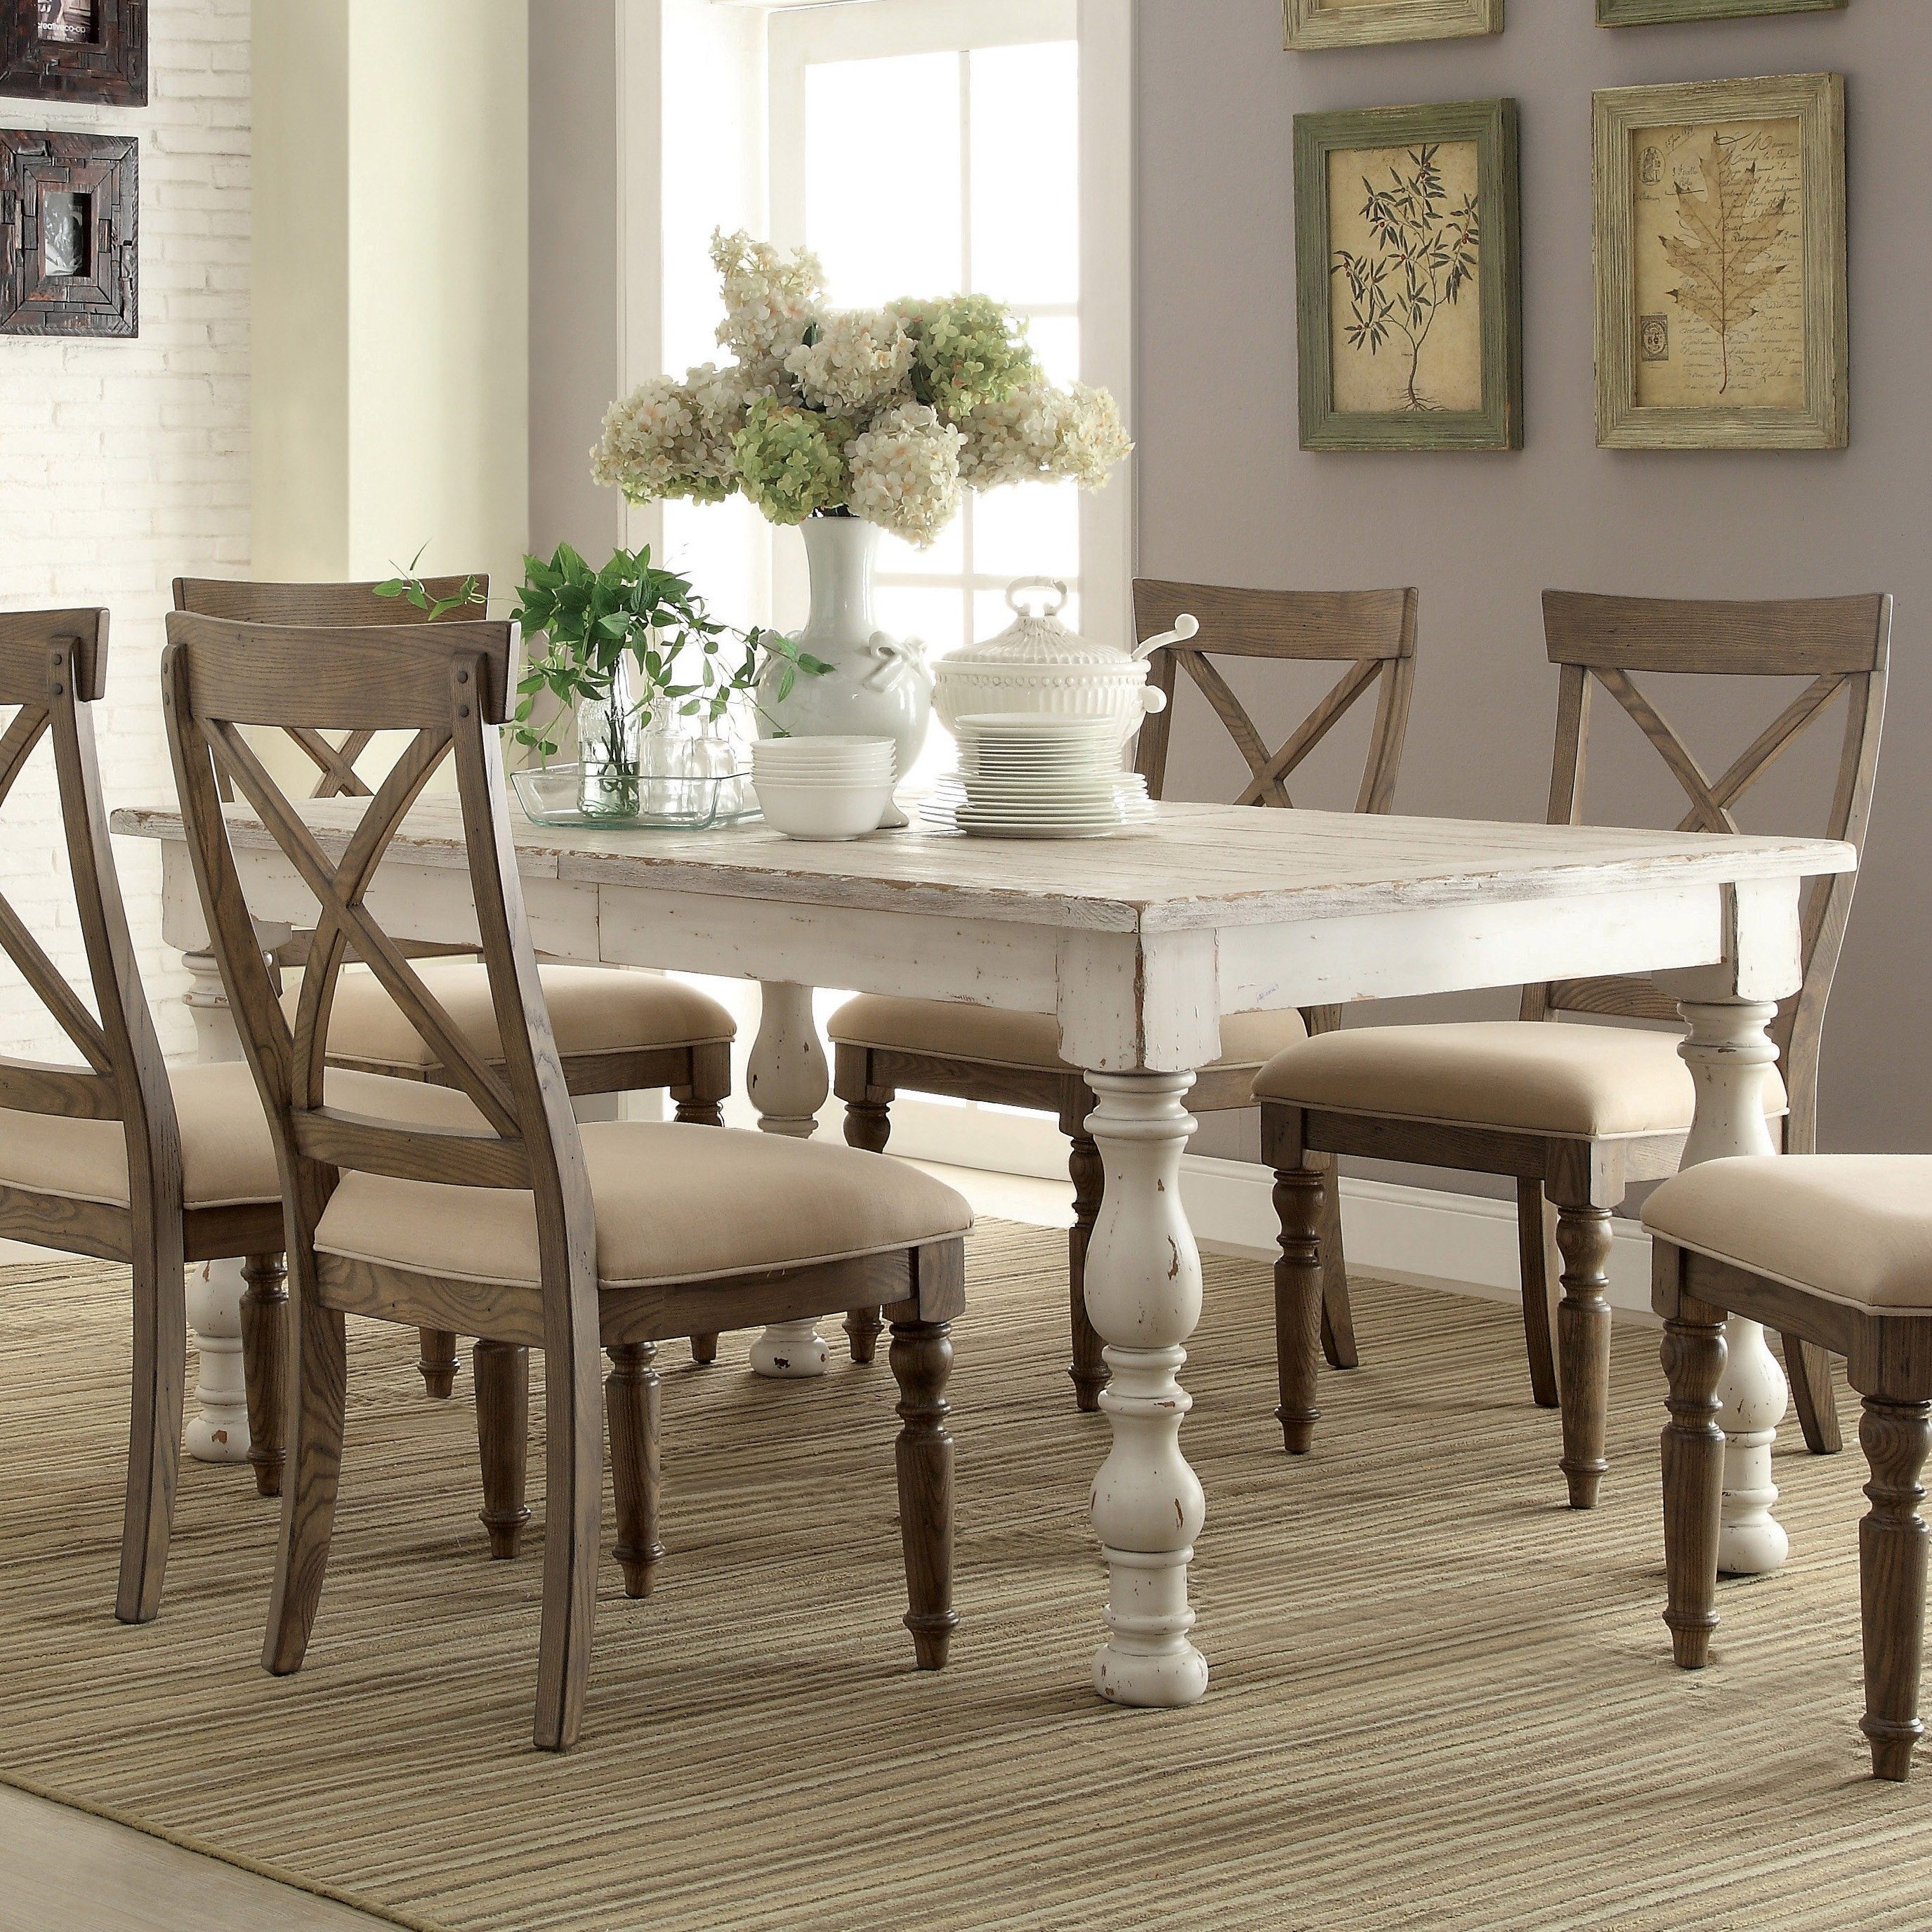 Dinning Room Table And Chairs Chair Lumbar Support Aberdeen Wood Rectangular Dining Only In Weathered Worn White